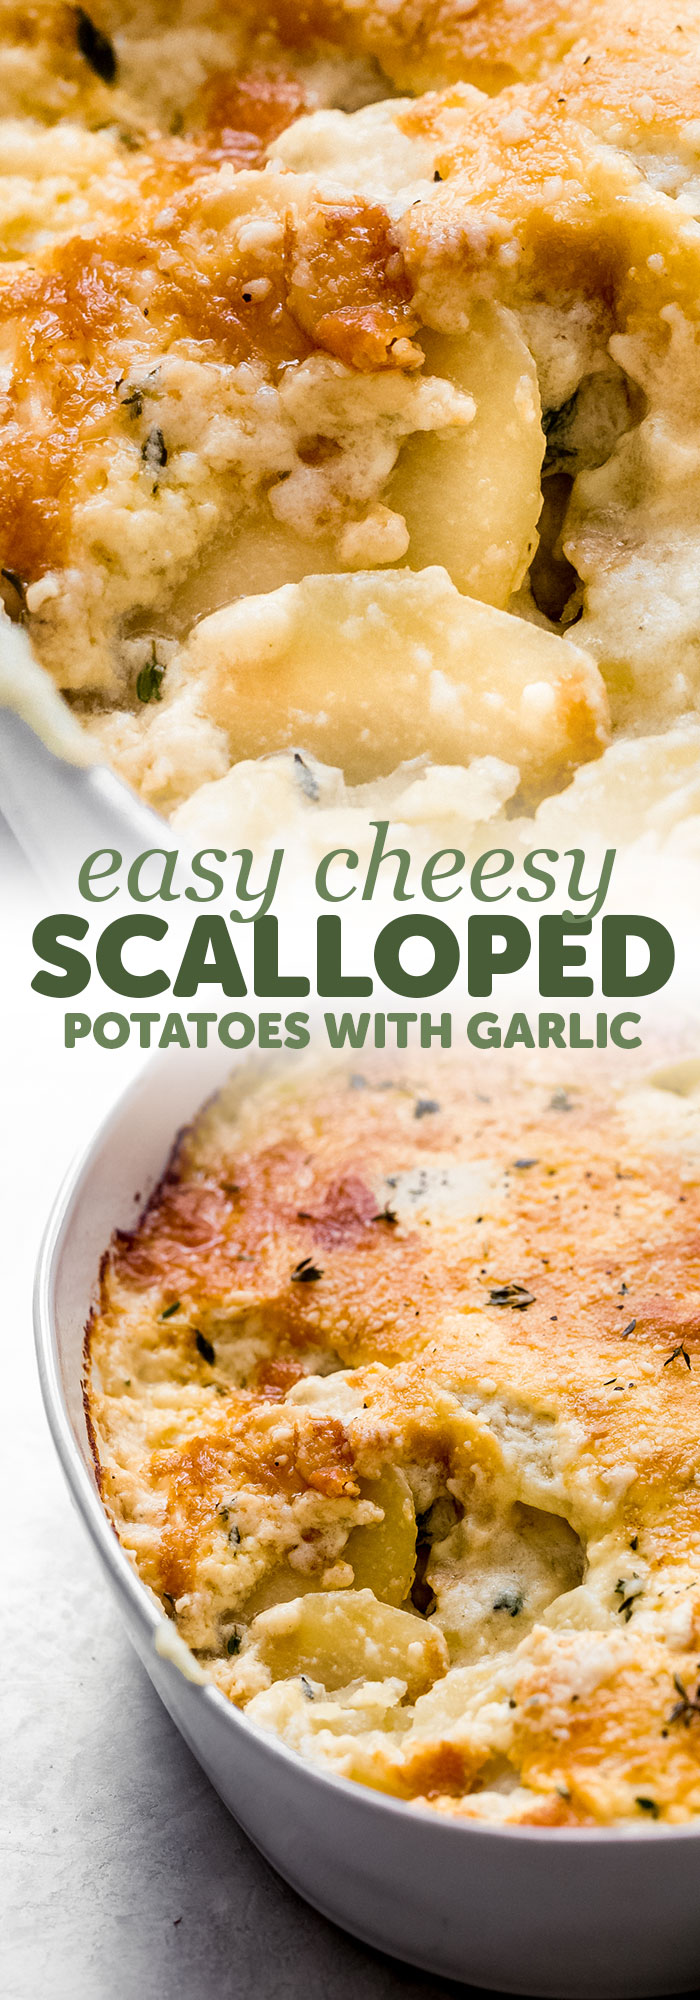 Cheesy Scalloped Potatoes - Garlicky, cheesy scalloped potatoes! Scalloped potatoes are thinly sliced potatoes cooked in a casserole dish with melty cheese and a delicious garlic sauce! #scallopedpotatoes #potatoesaugratin #potatocasserole #cheesyscallopedpotatoes #bakedpotatoes #easterrecipes | Littlespicejar.com